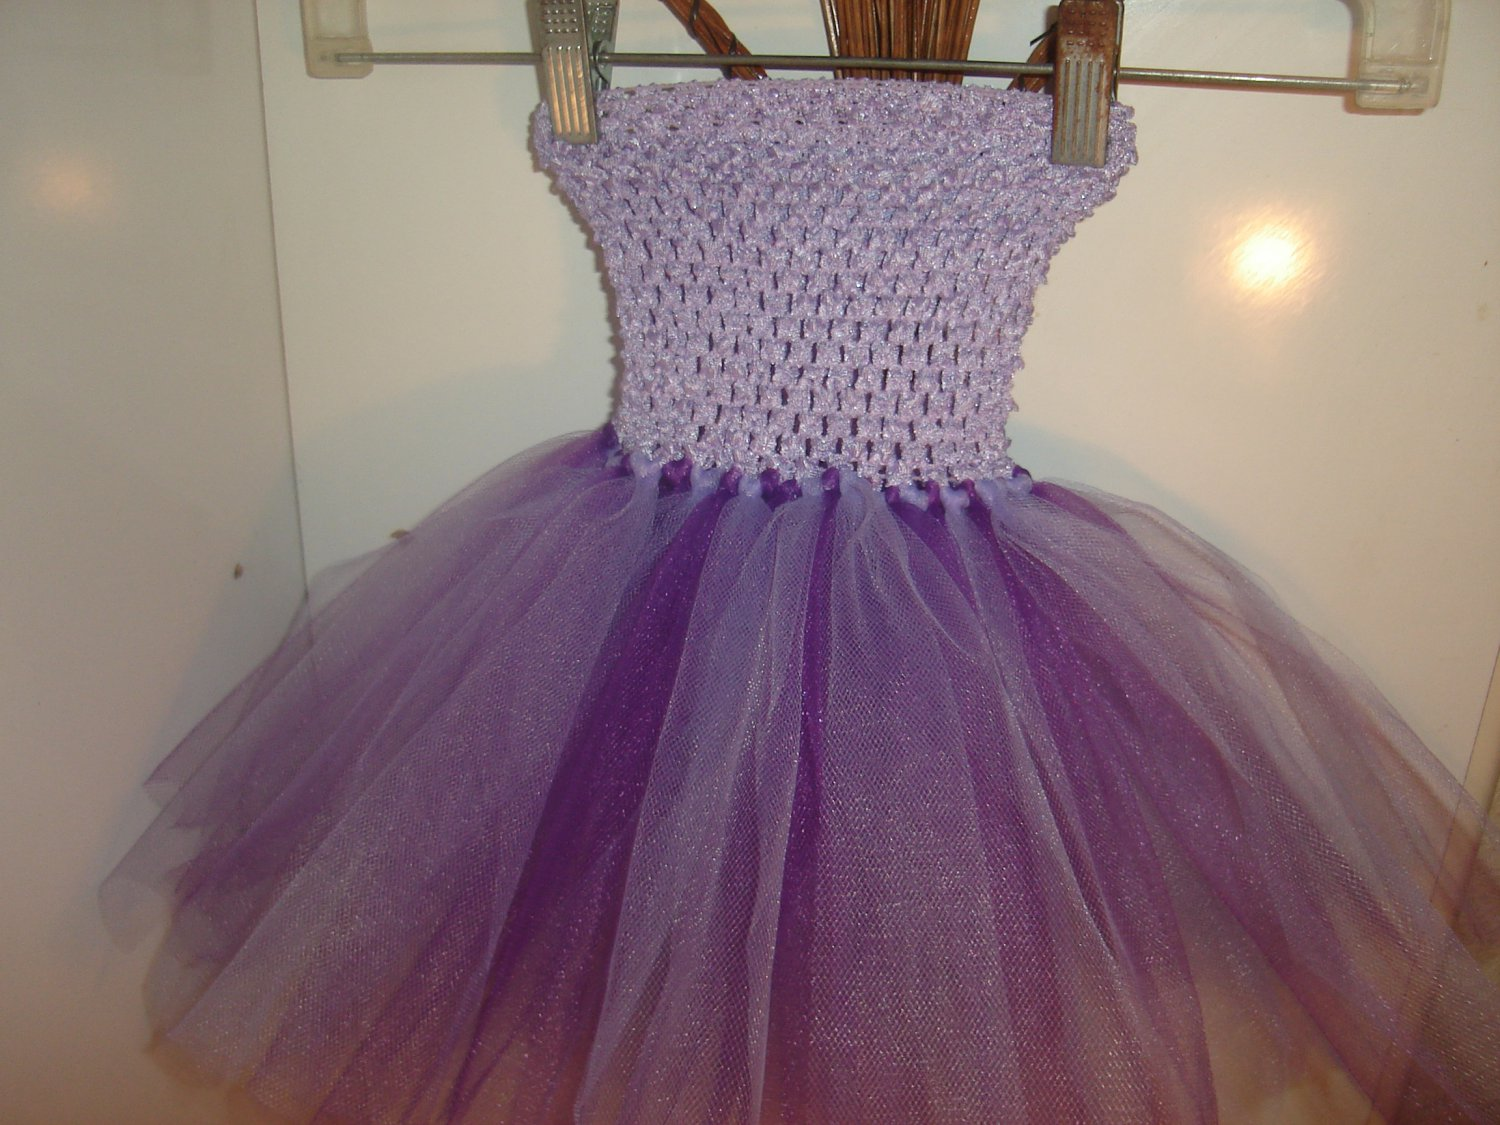 HANDMADE PURPLE/PLUM/LAVENDER TUTU DRESS